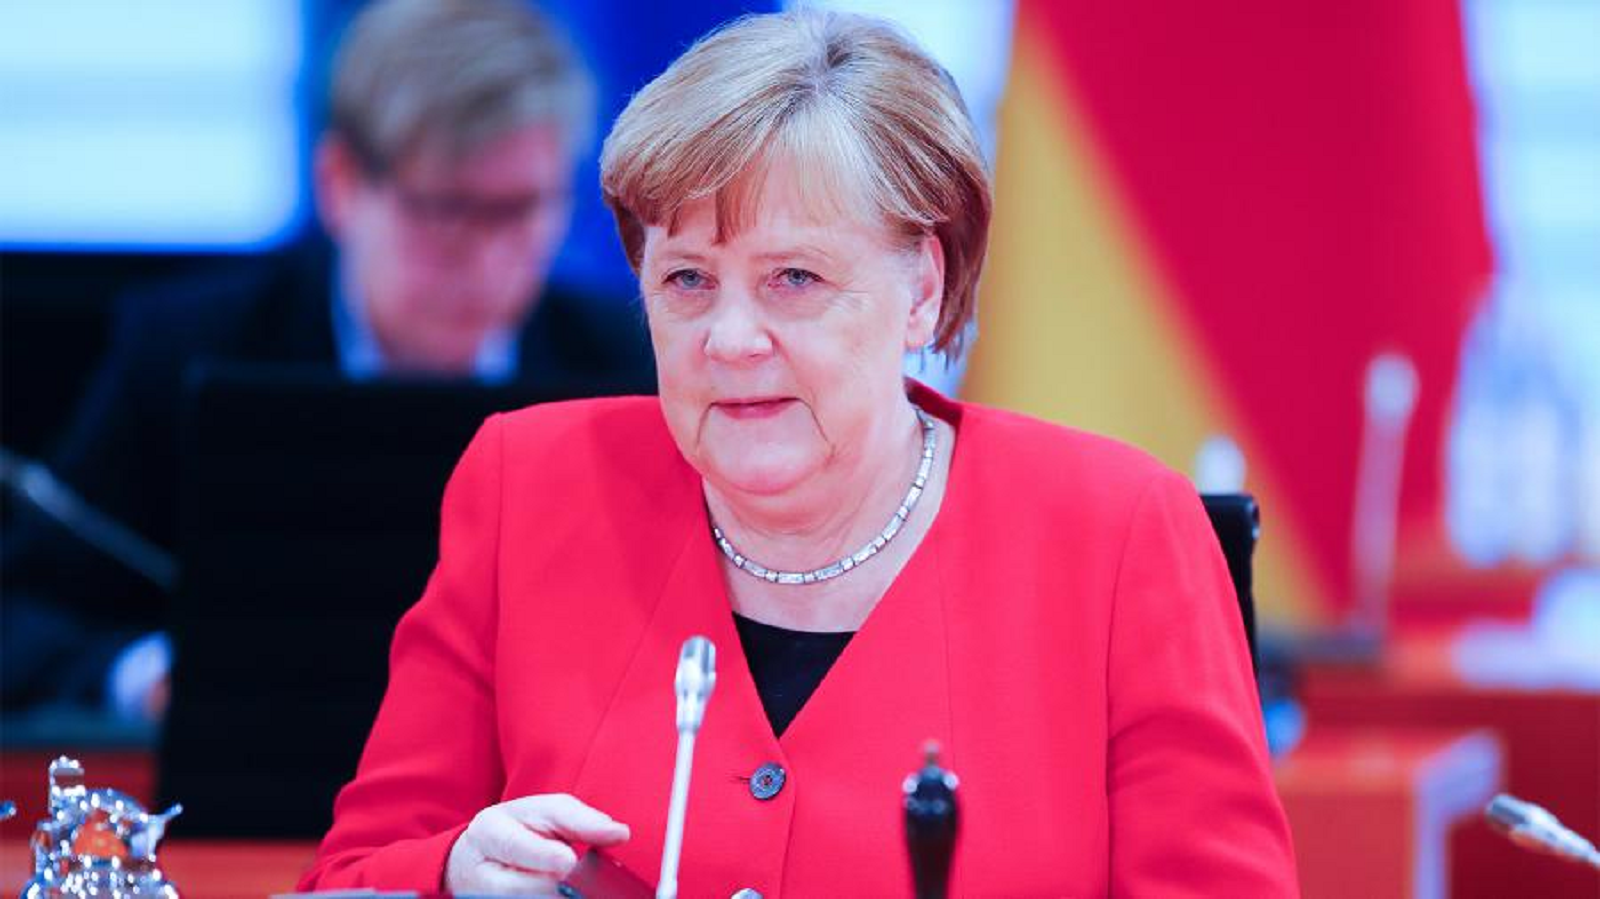 Photo of Merkel announces the completion of the first phase of the COVID-19 pandemic in Germany